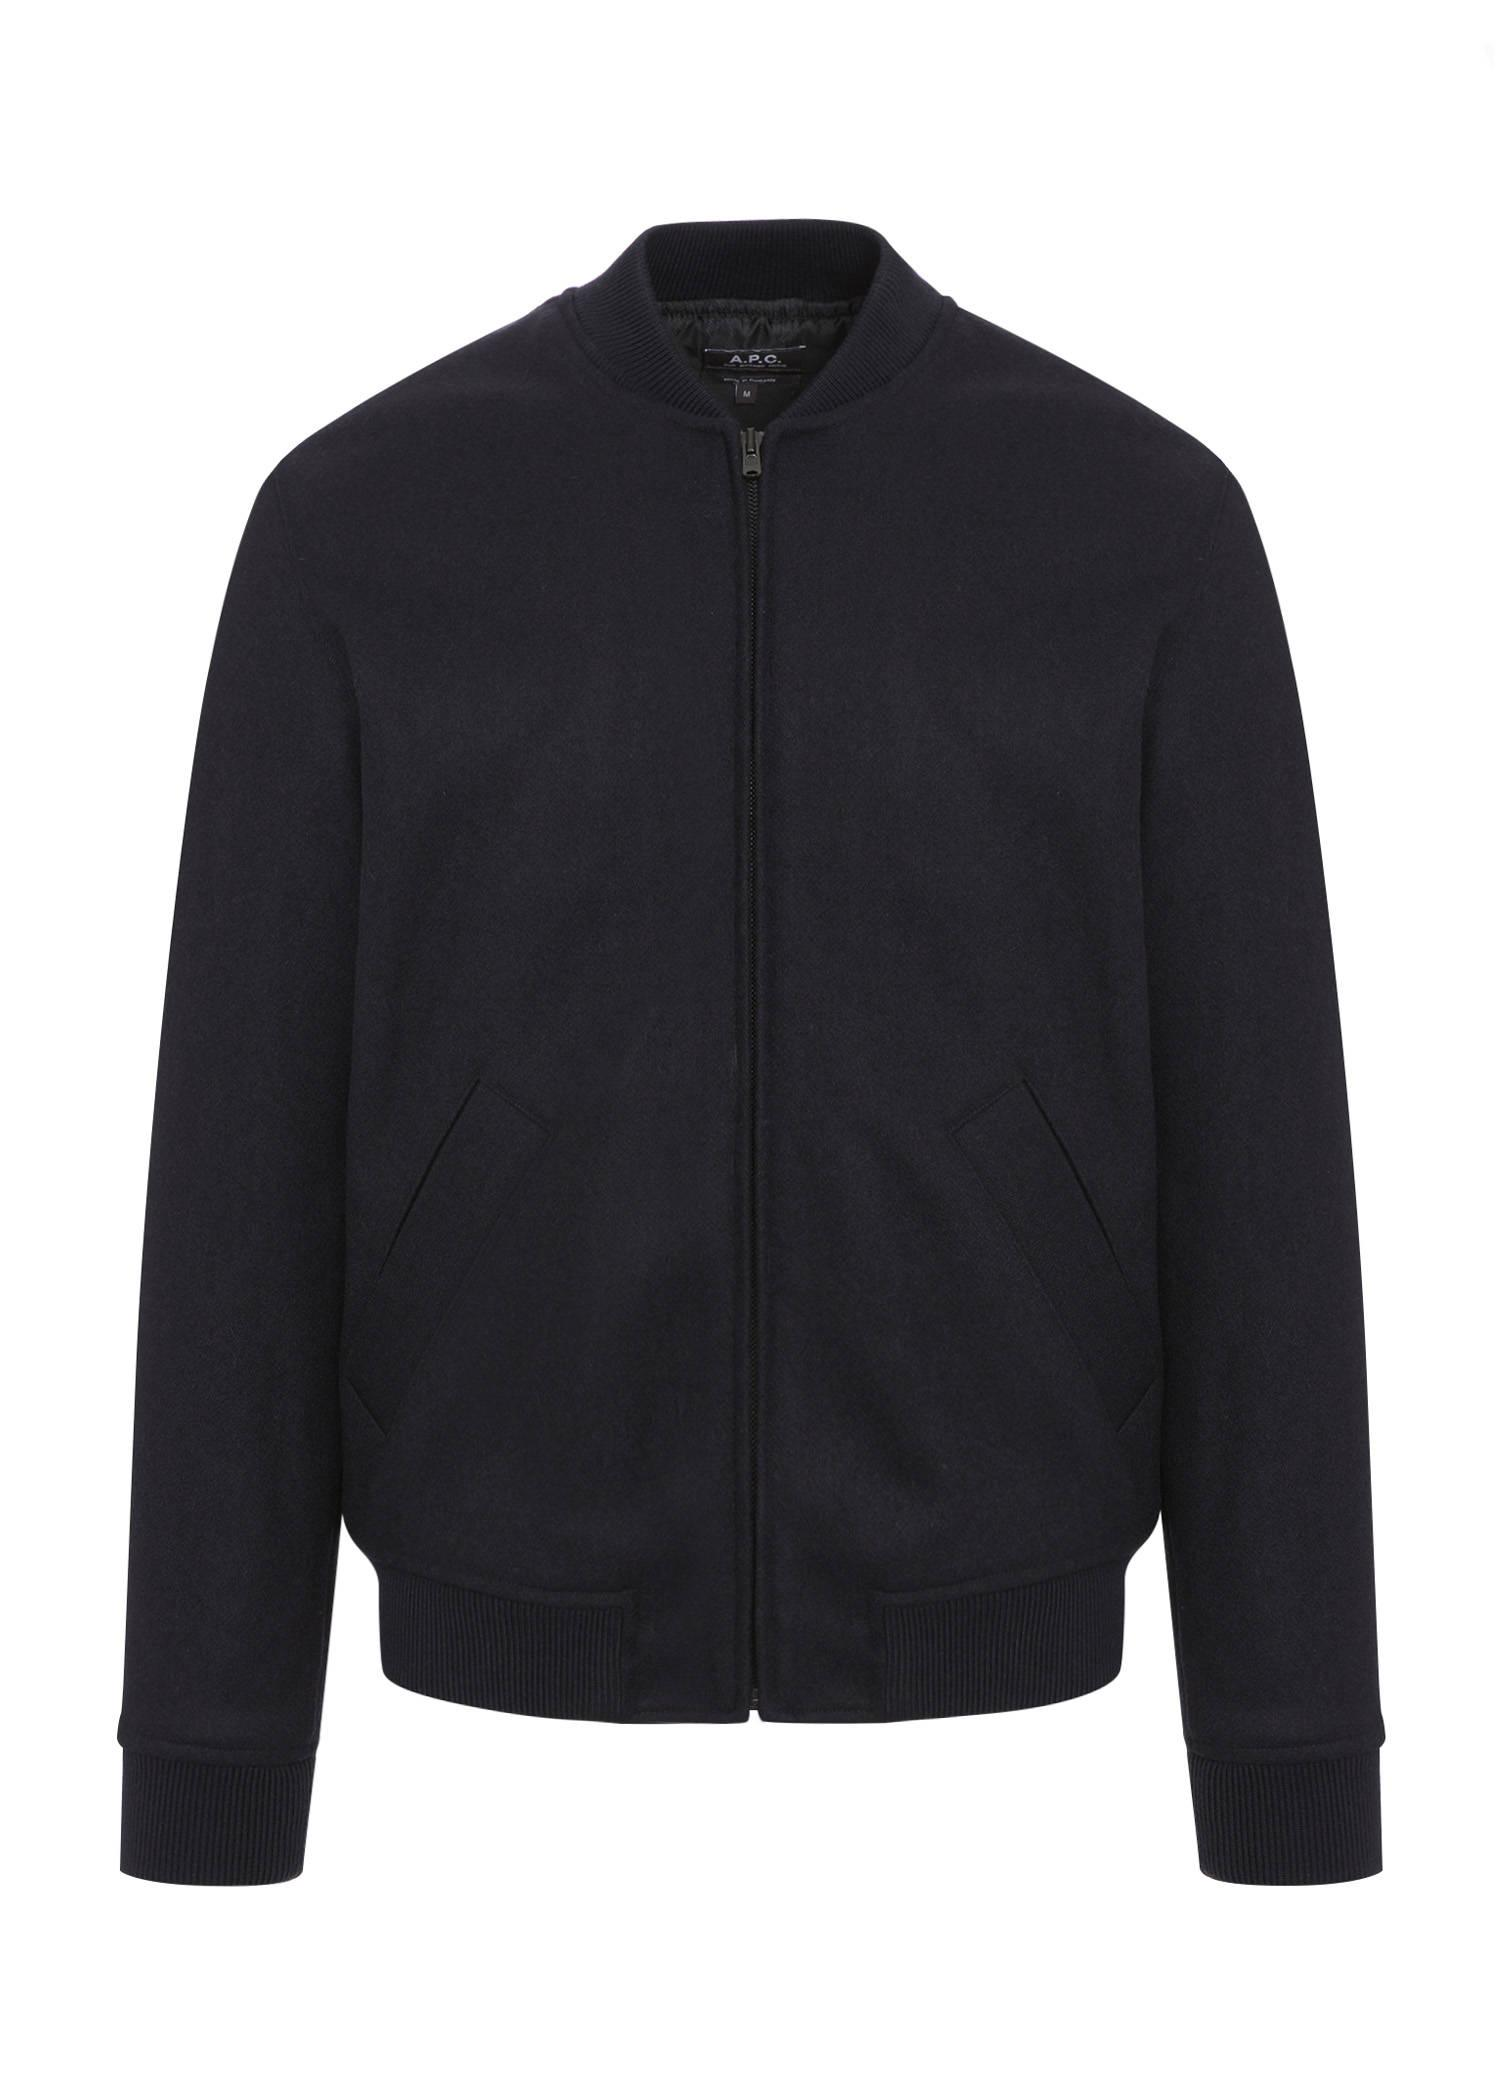 A.P.C. Gaston Jacket In Heathered Navy Blue